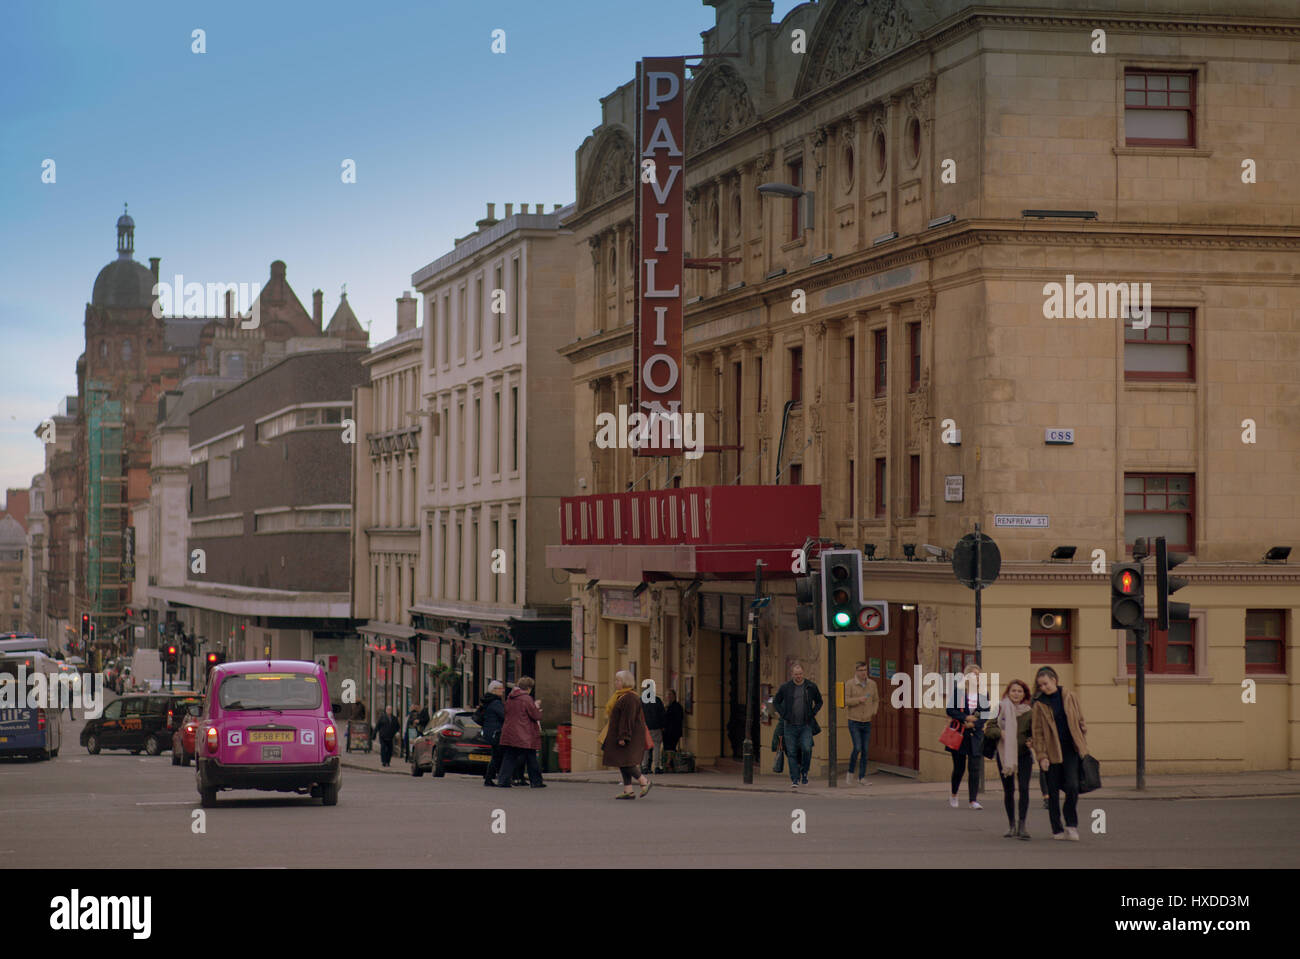 Renfield St Pavilion theater theatre pink taxi Glasgow street scene cityscape - Stock Image